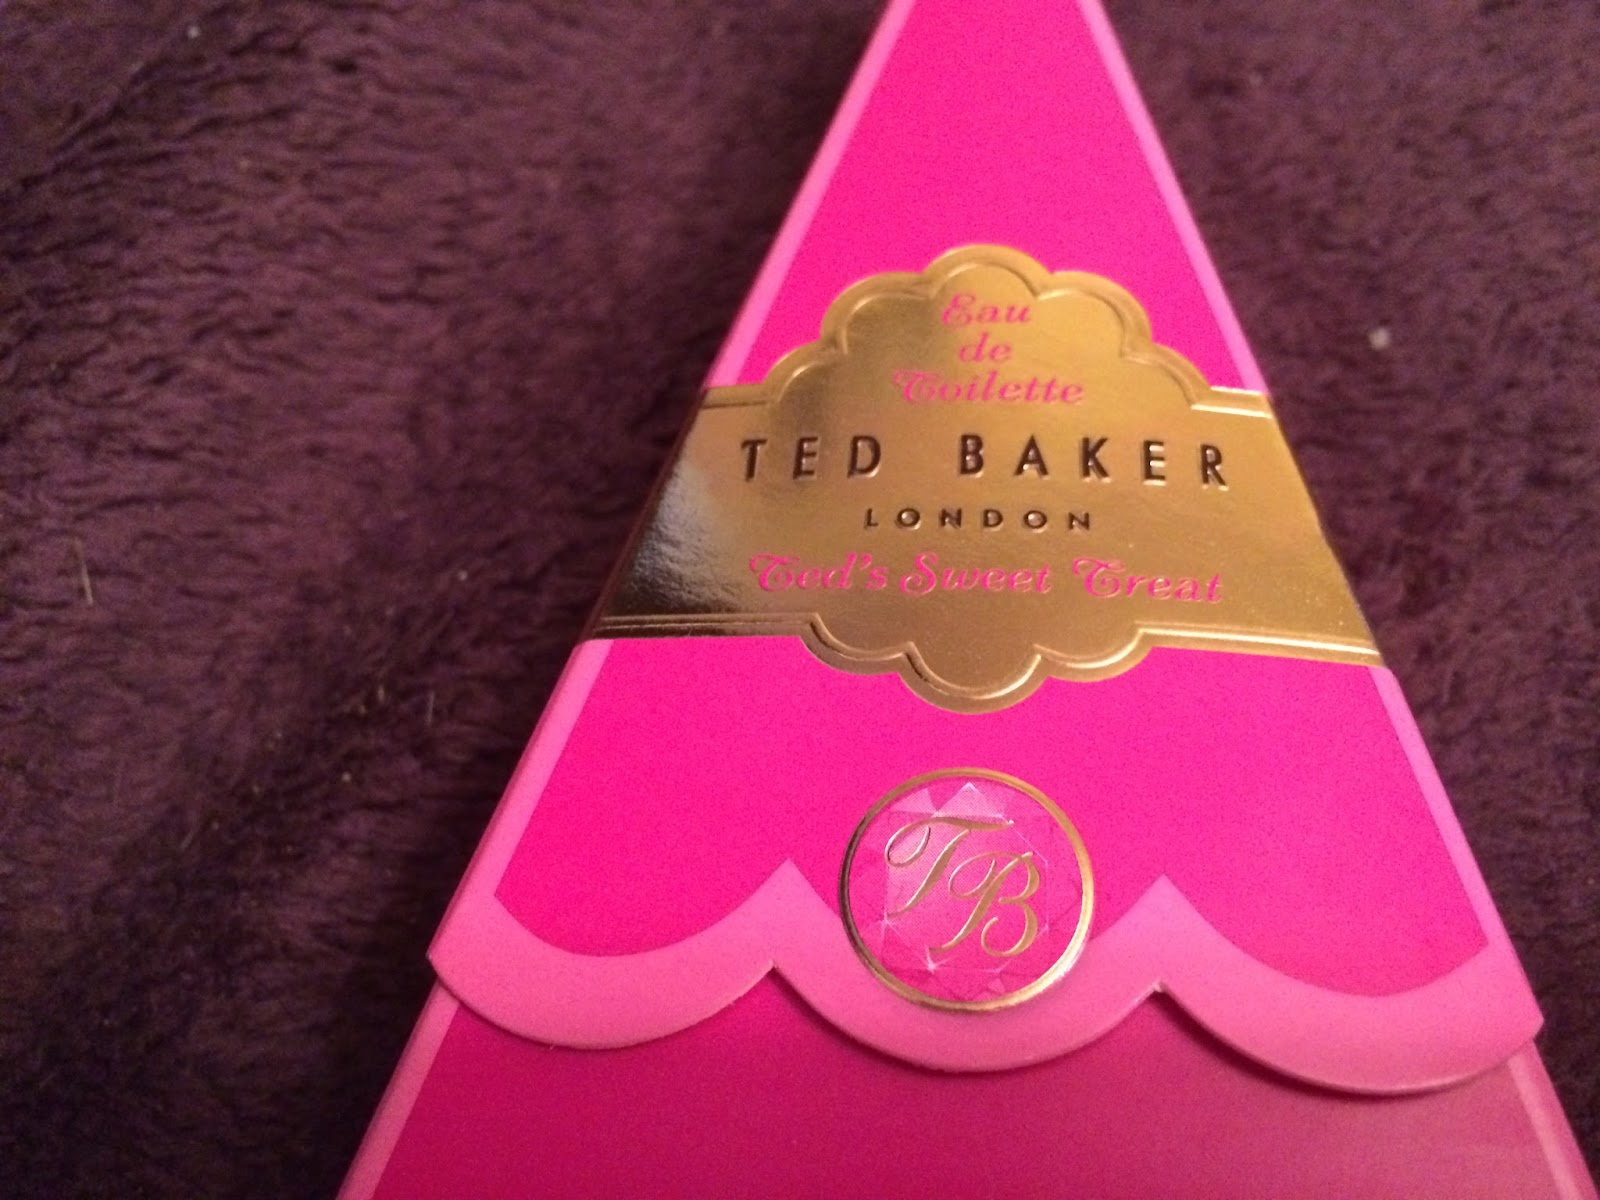 Ted Baker Purse Spray